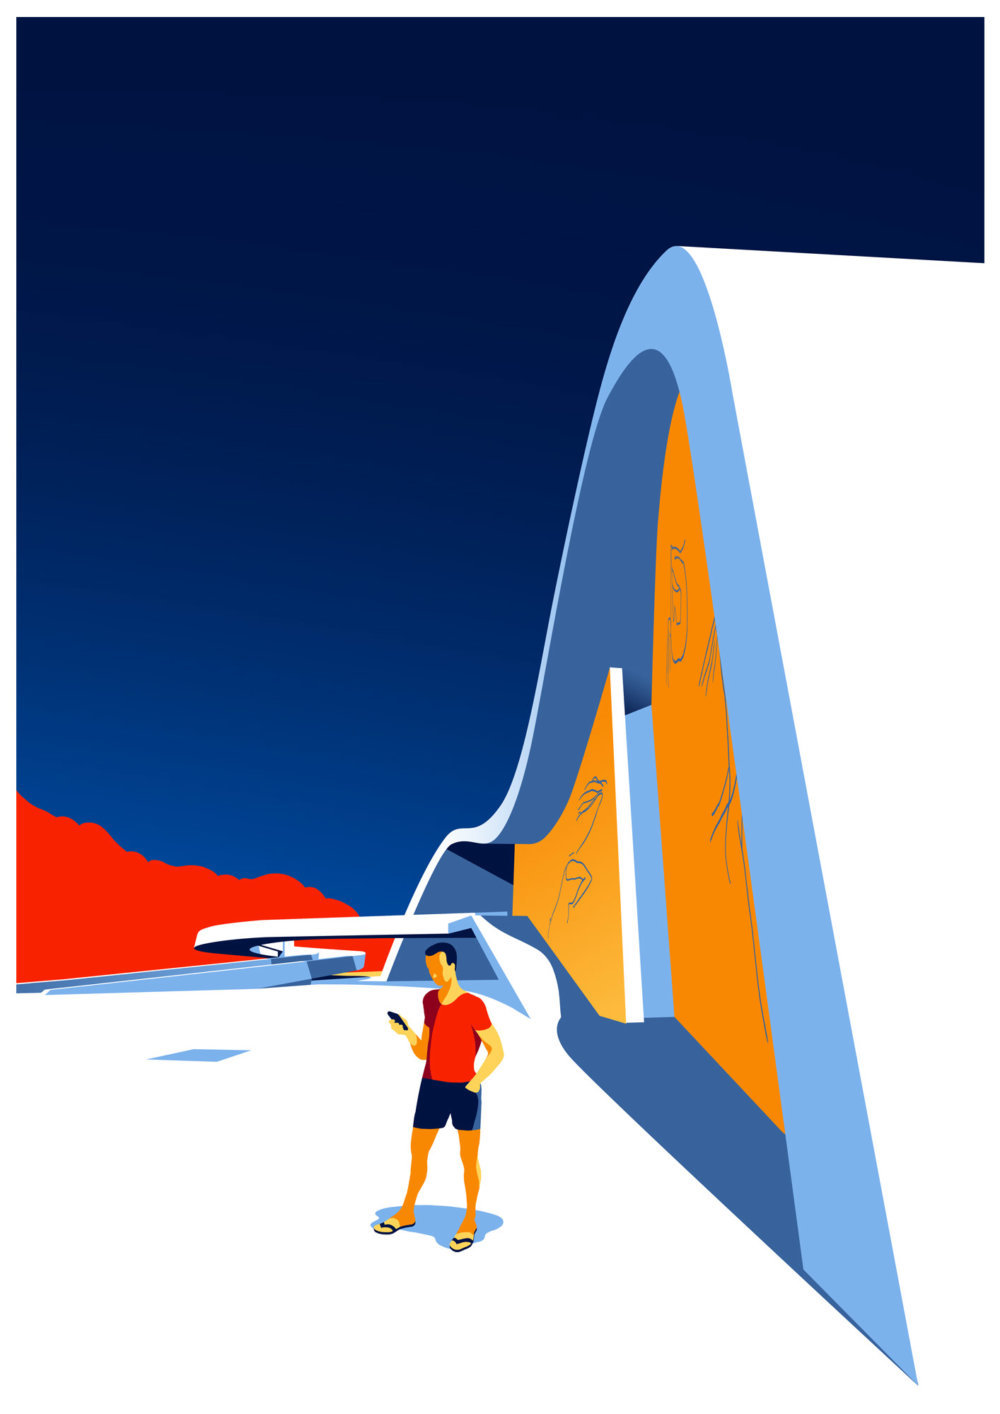 Utopia Architectural Illustration Series Featuring Oscar Niemeyers Design Lines By Levente Szabo 6